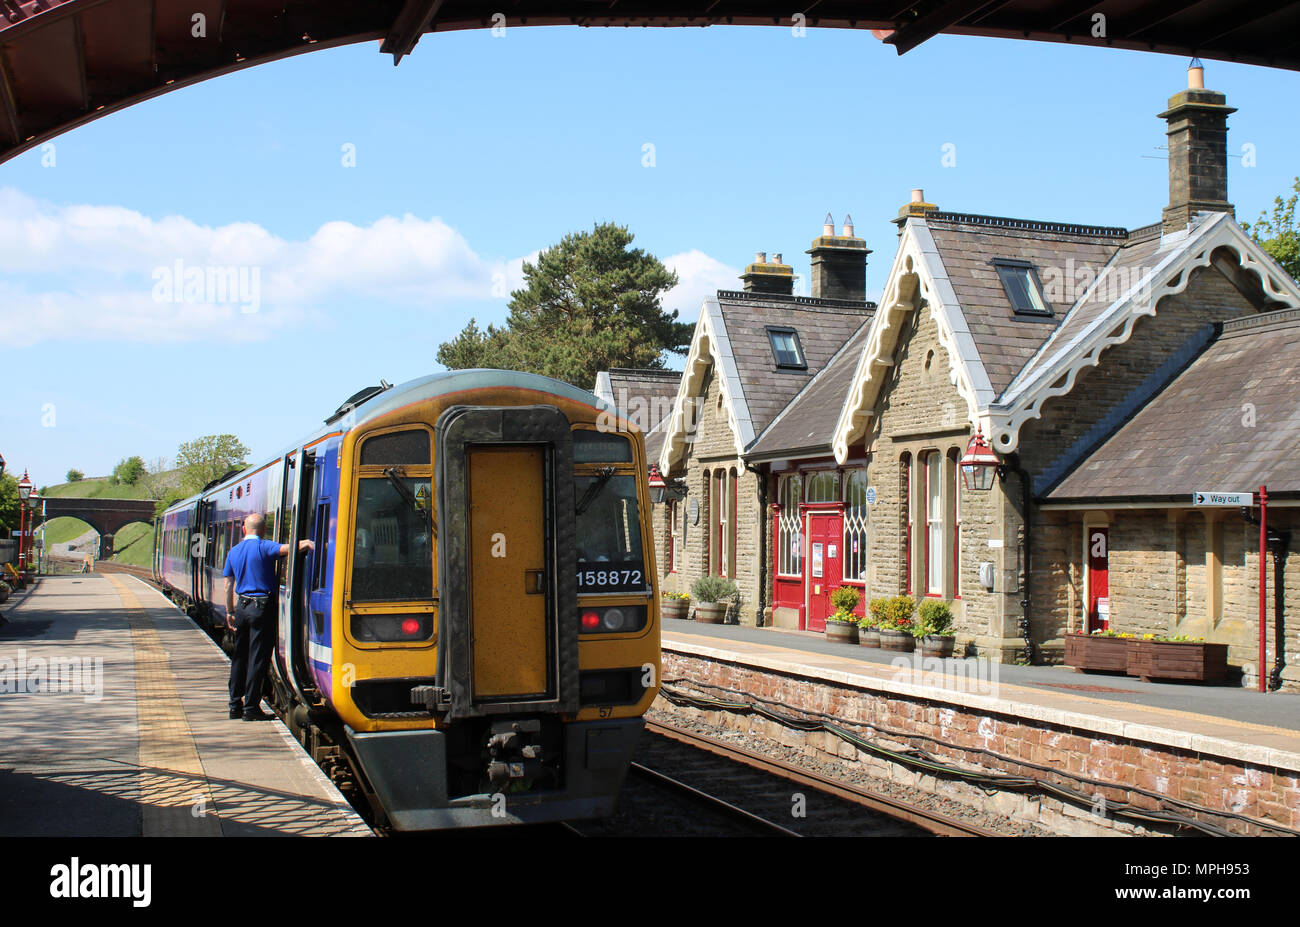 Class 158 diesel multiple unit on a passenger train in Northern livery at Kirkby Stephen station on the Settle to Carlisle railway line. - Stock Image